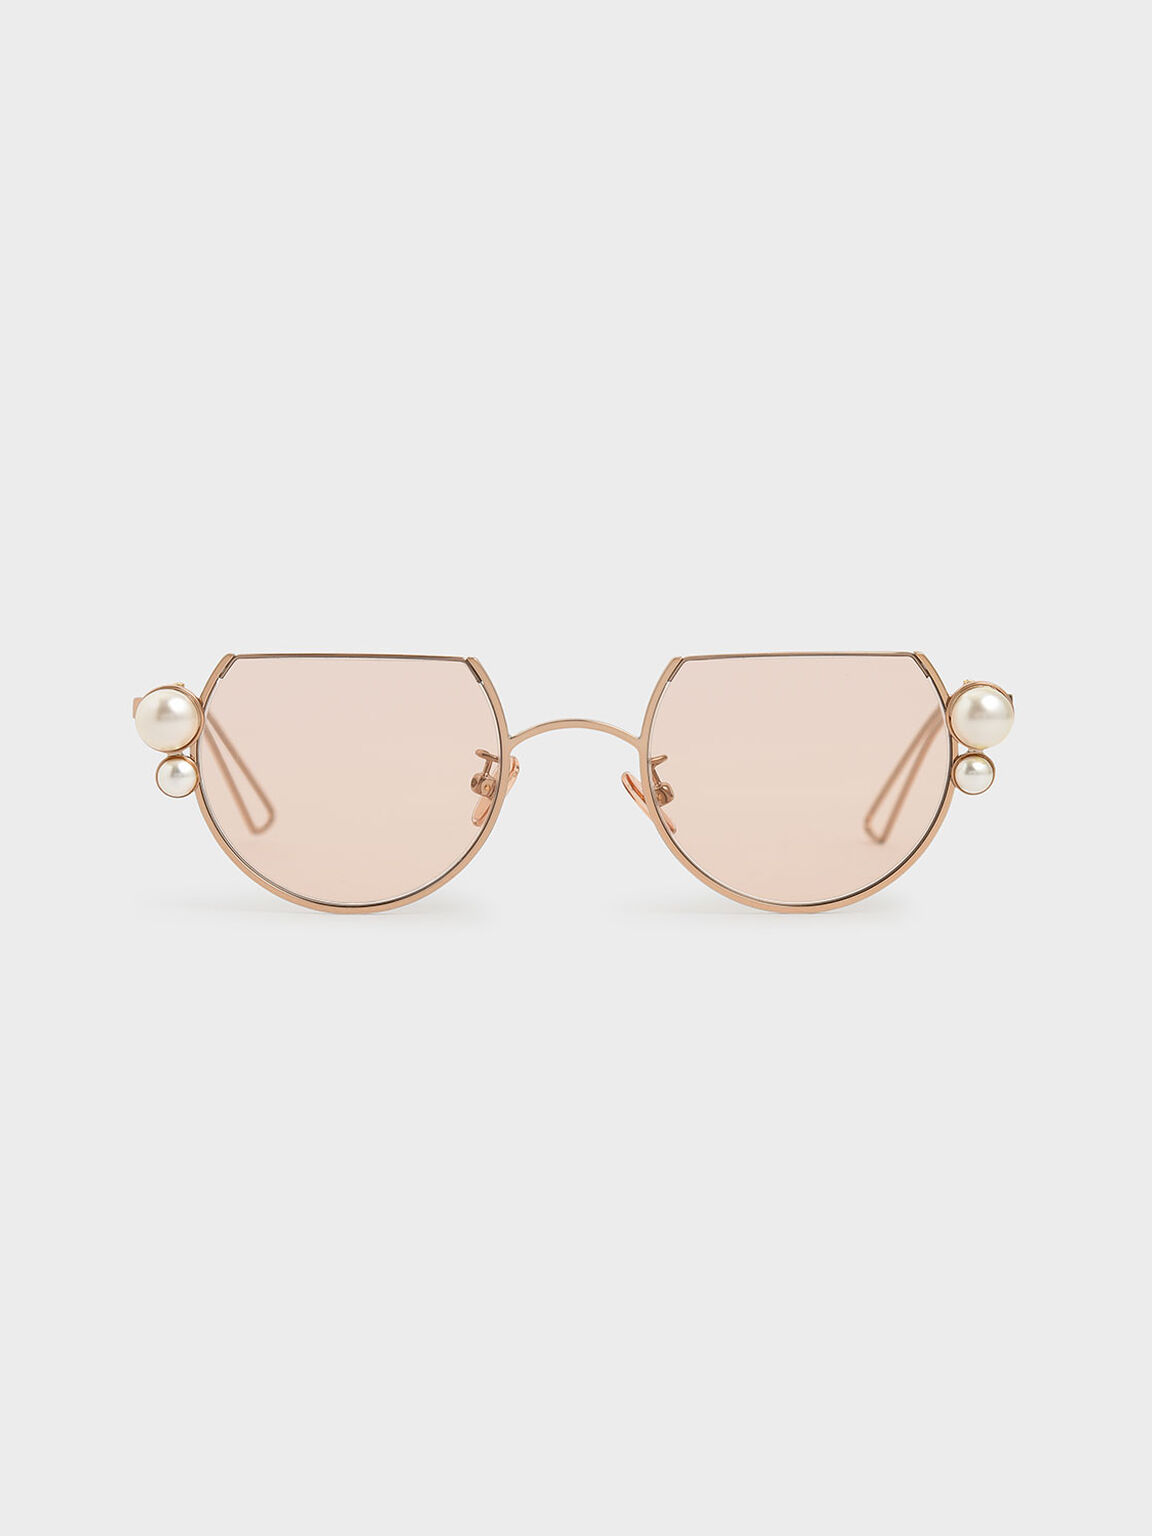 Swarovski®; Crystal Pearl Embellished Cut-Off Round Sunglasses, Rose Gold, hi-res